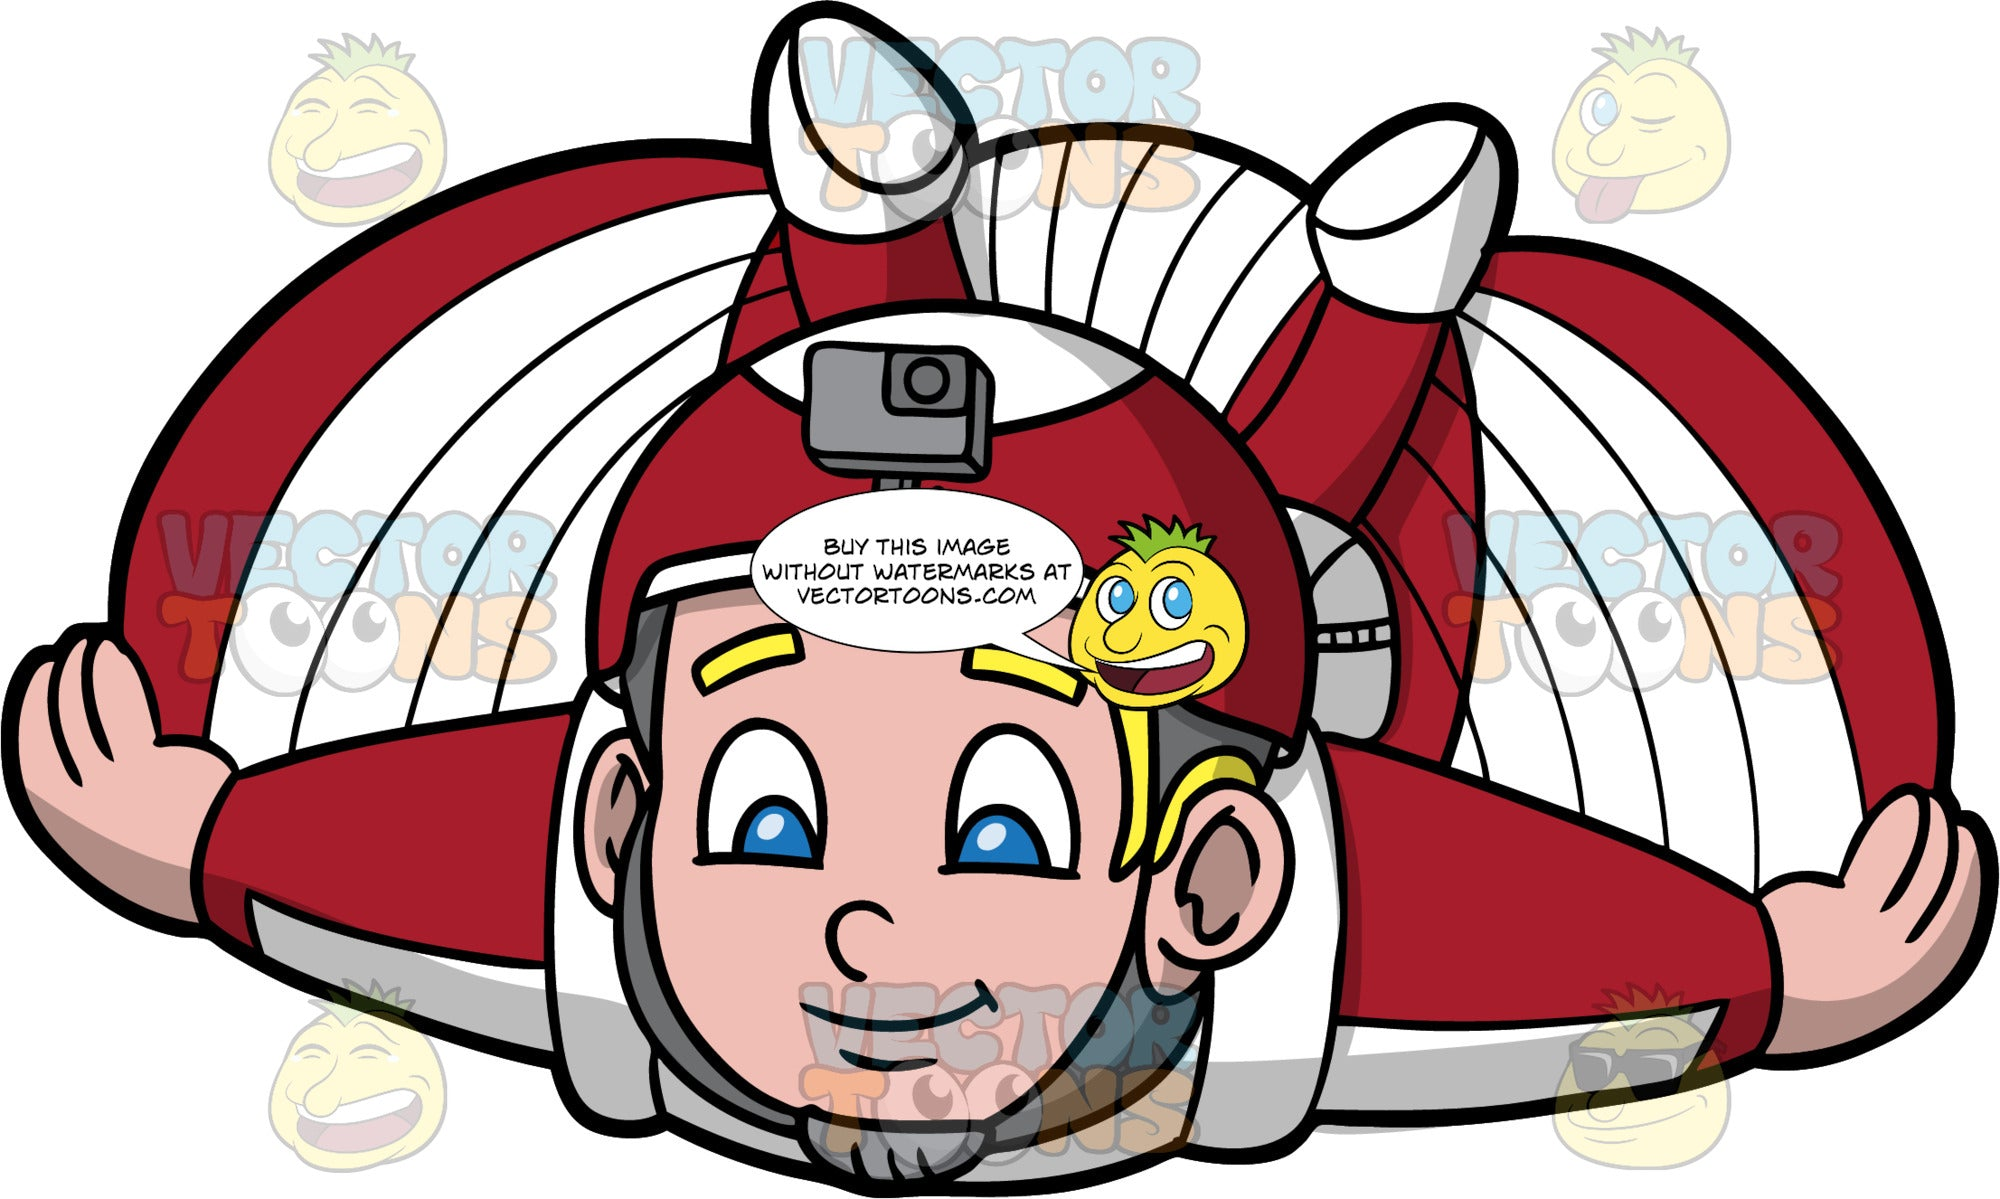 Young Sam Flying Around In A Wingsuit. A young blonde boy wearing a red and white helmet with a camera attached, flying around in his red and white wingsuit